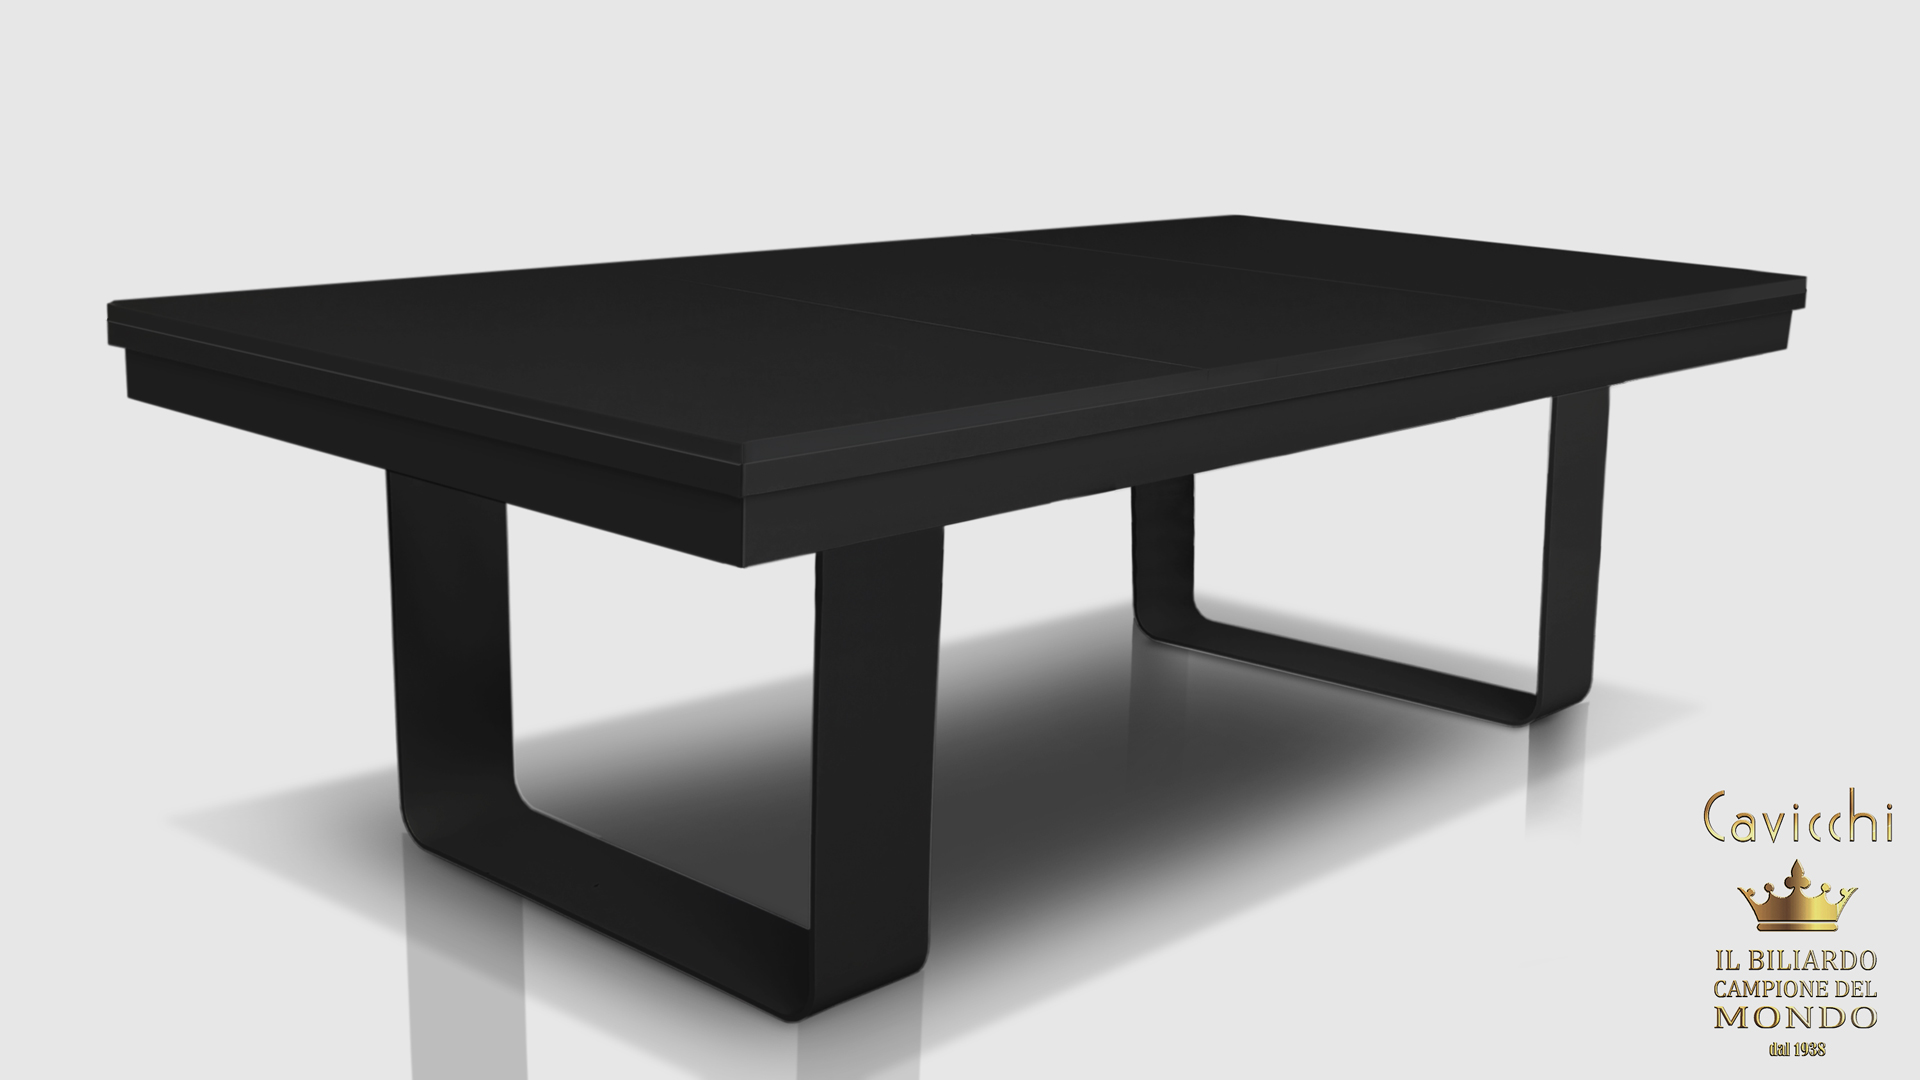 Cavicchi Mistral Black Pool Table 8